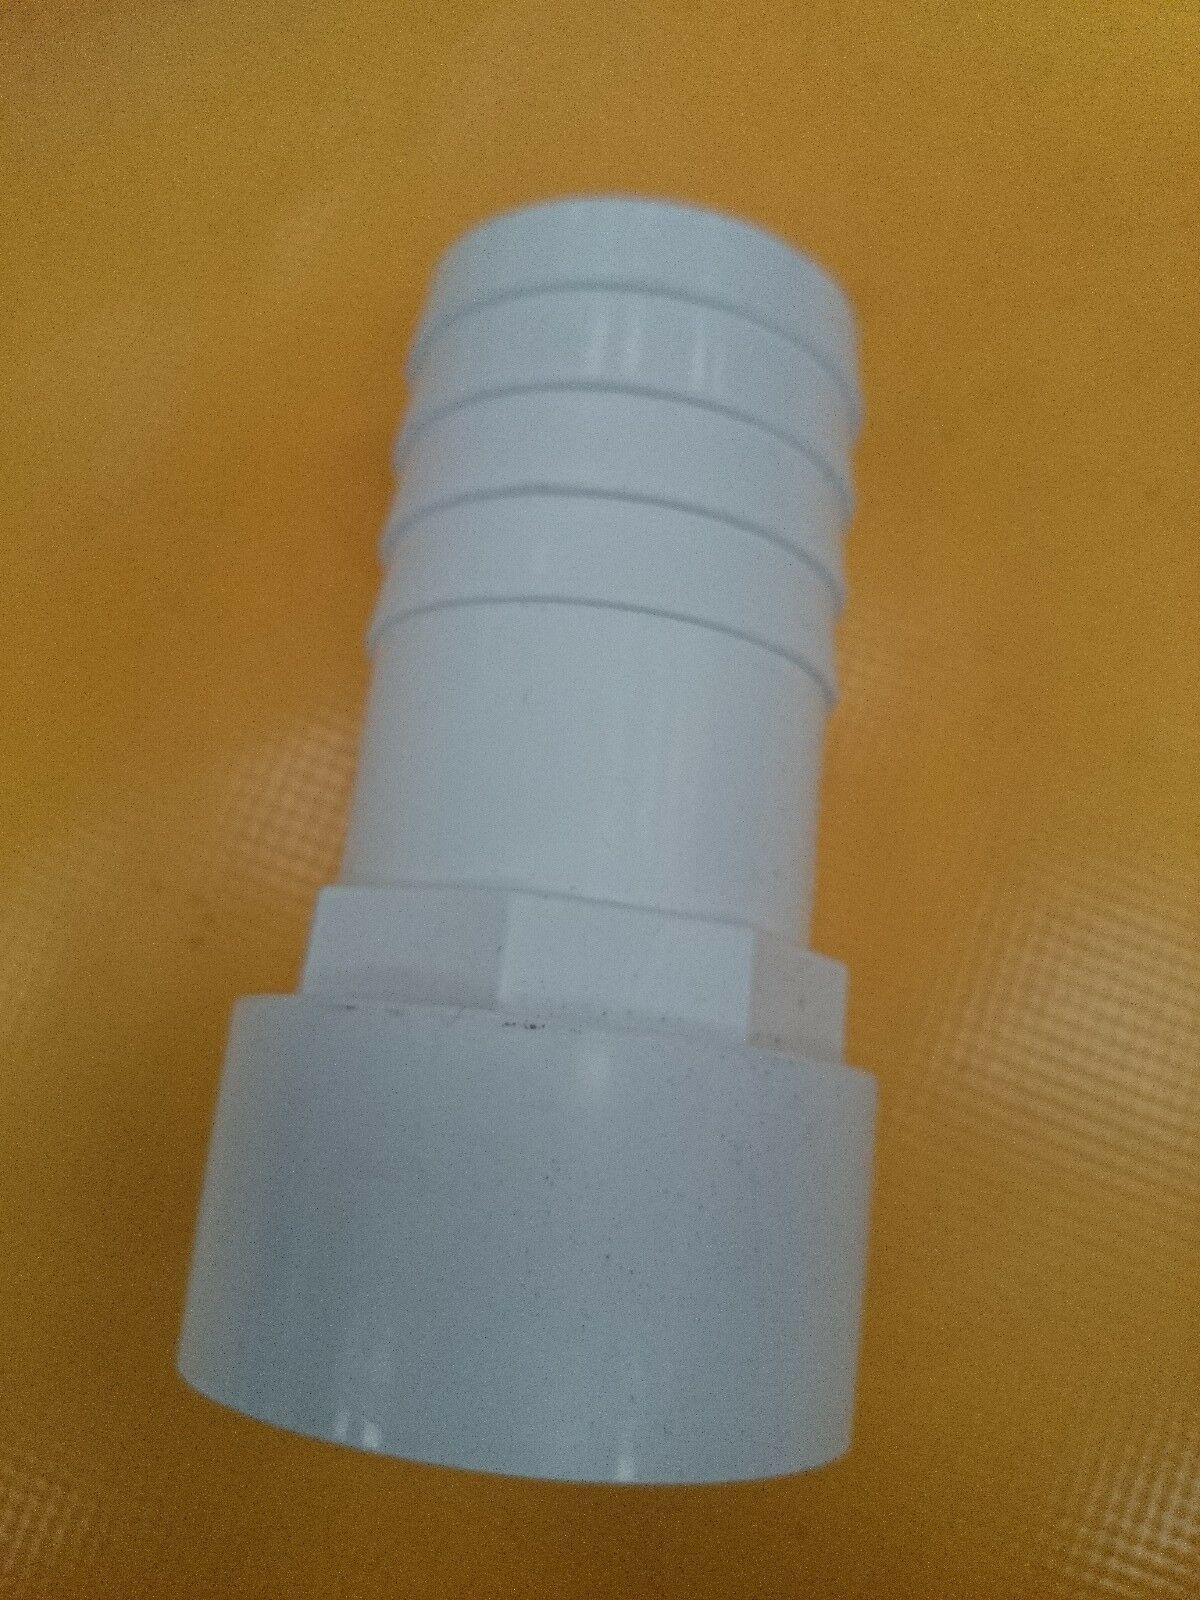 """Hosetail 1.25/"""" 1.25/"""" Swimming Pool Hose Connector"""